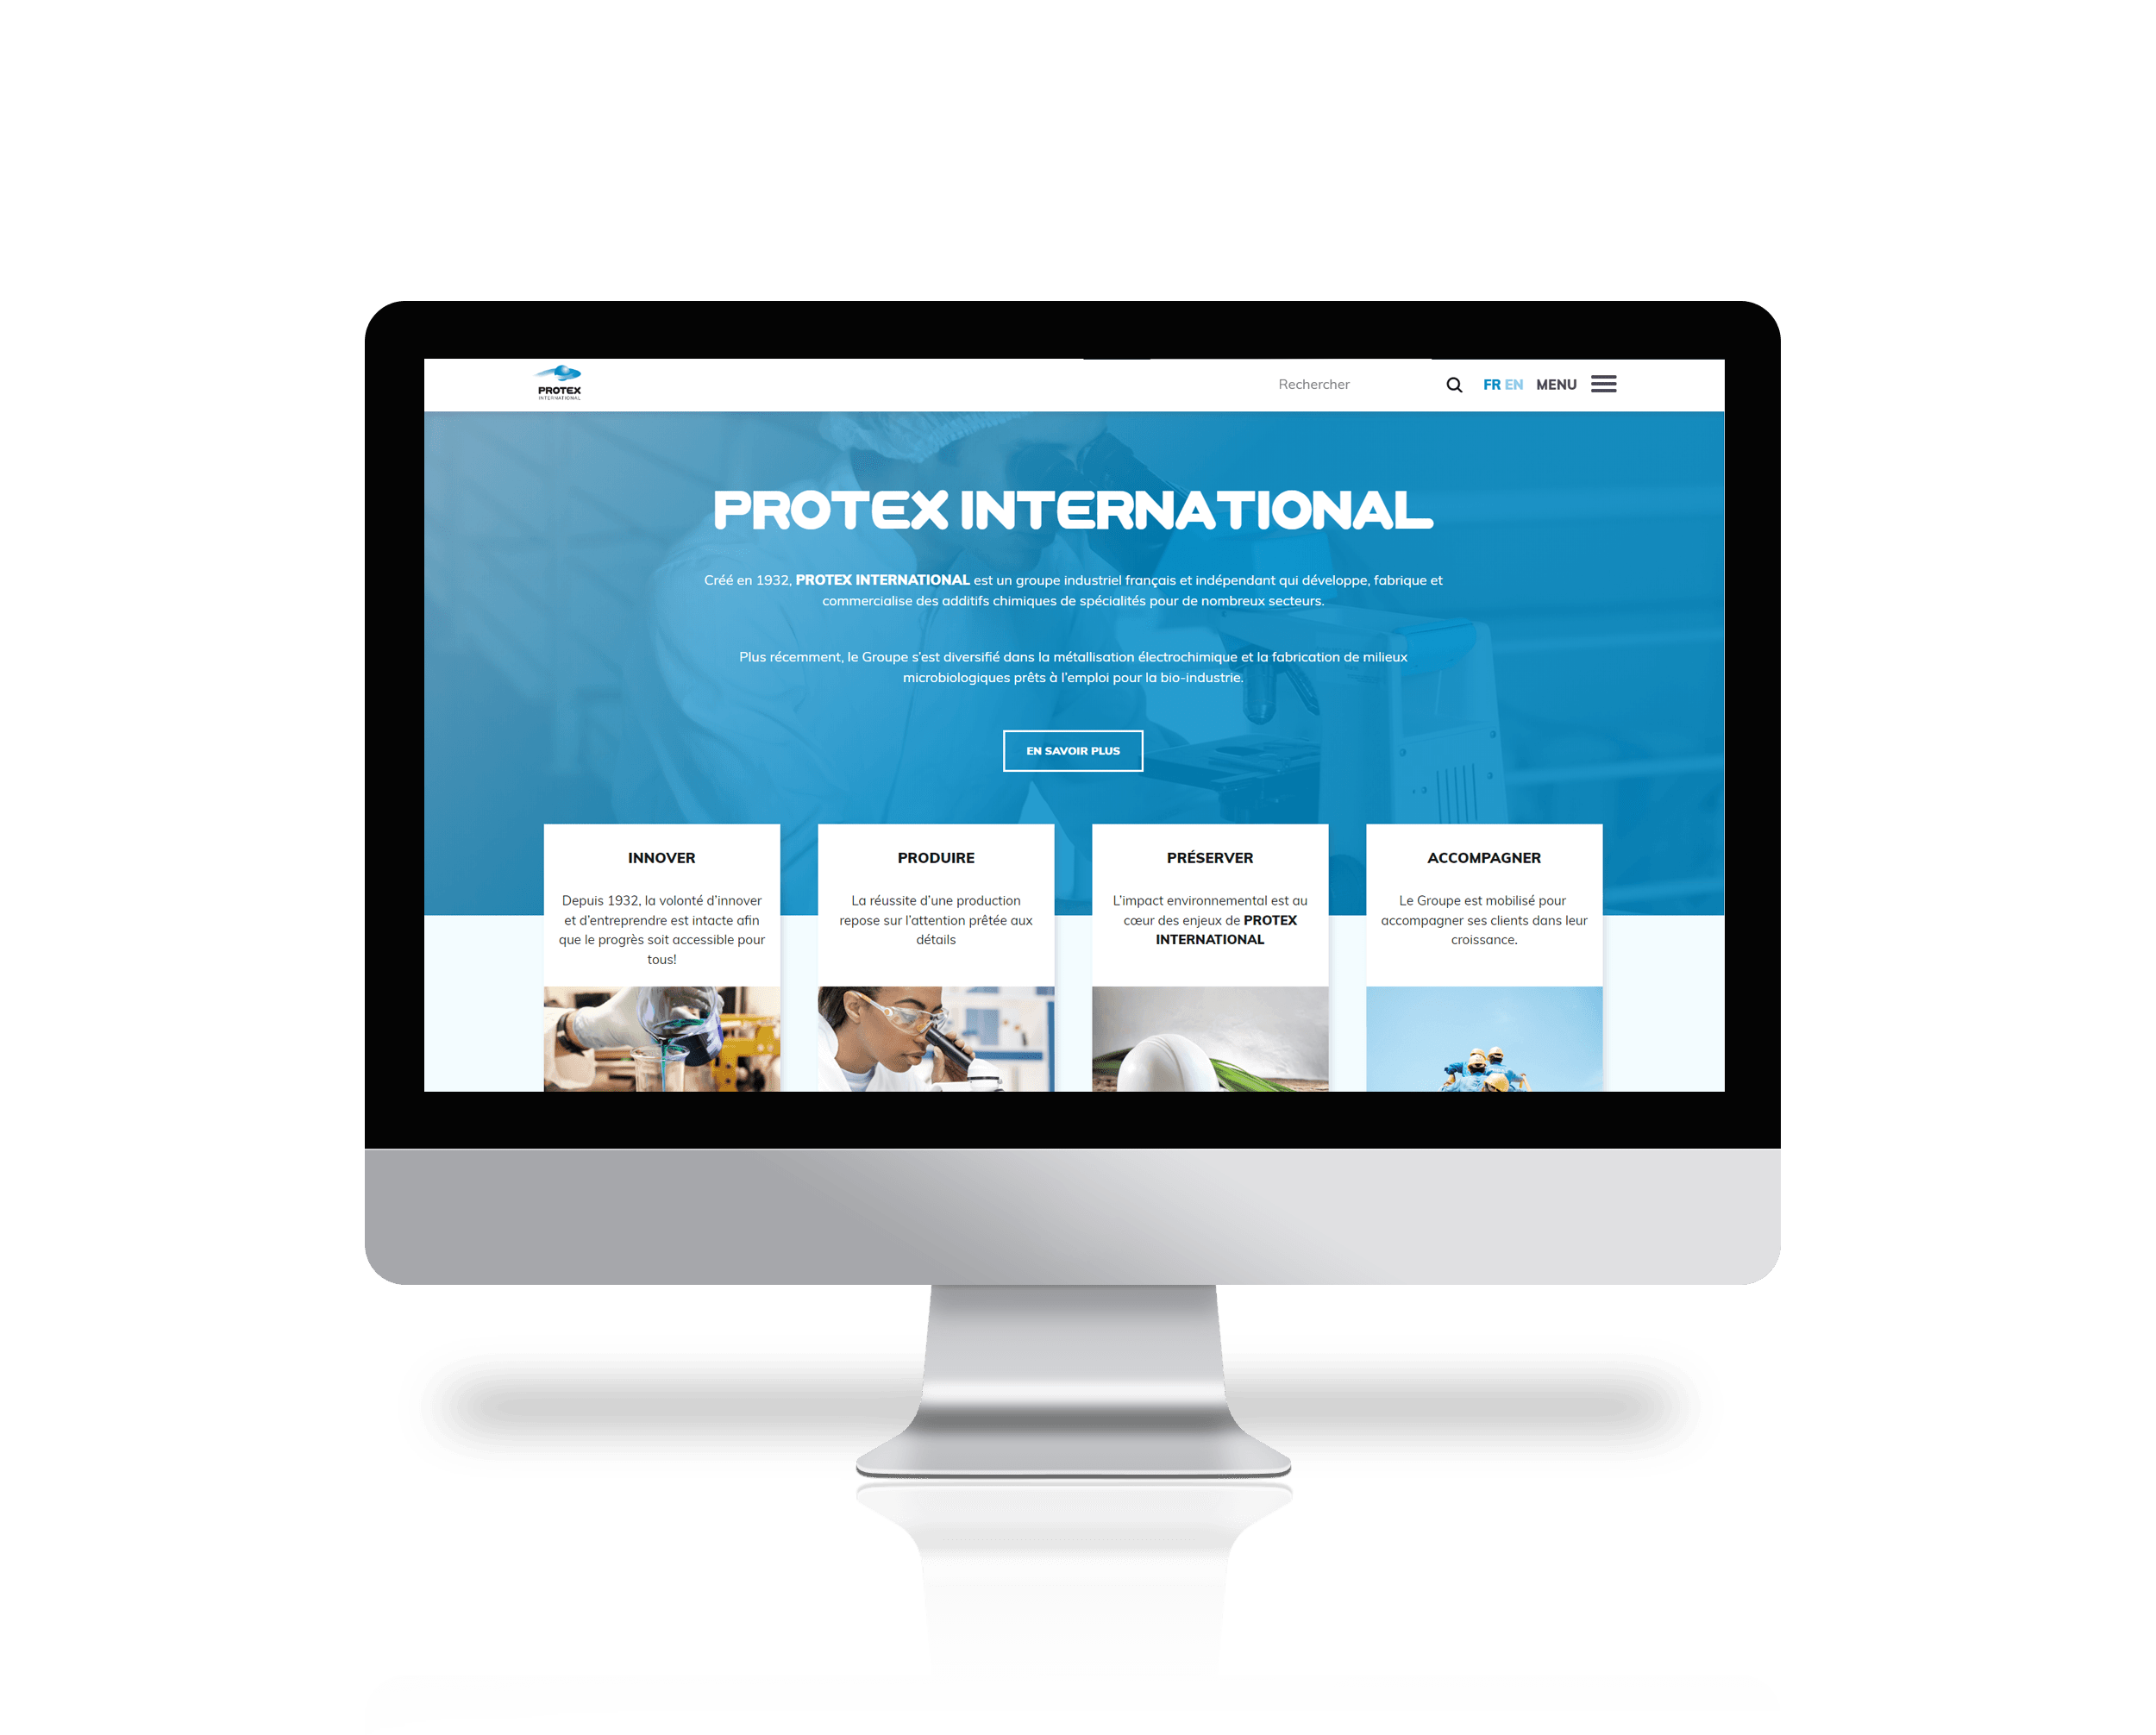 Protex International